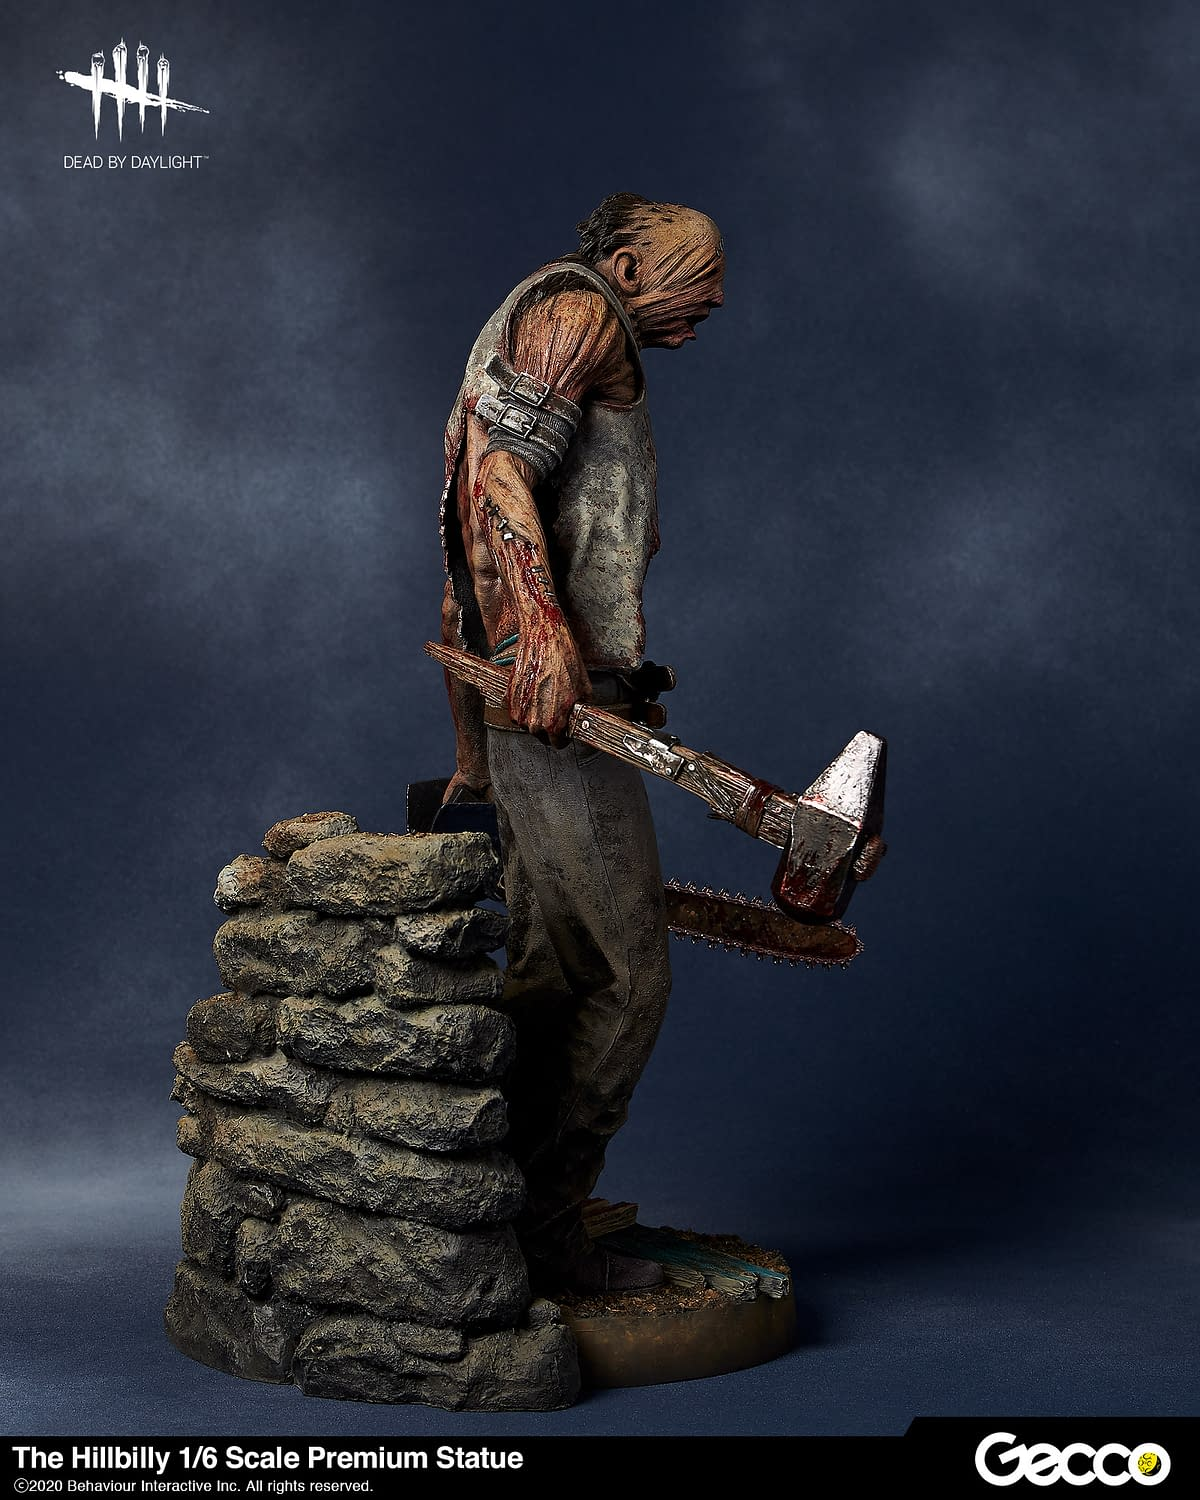 Gecco-Dead-by-Daylight-Hillbilly-Statue-004